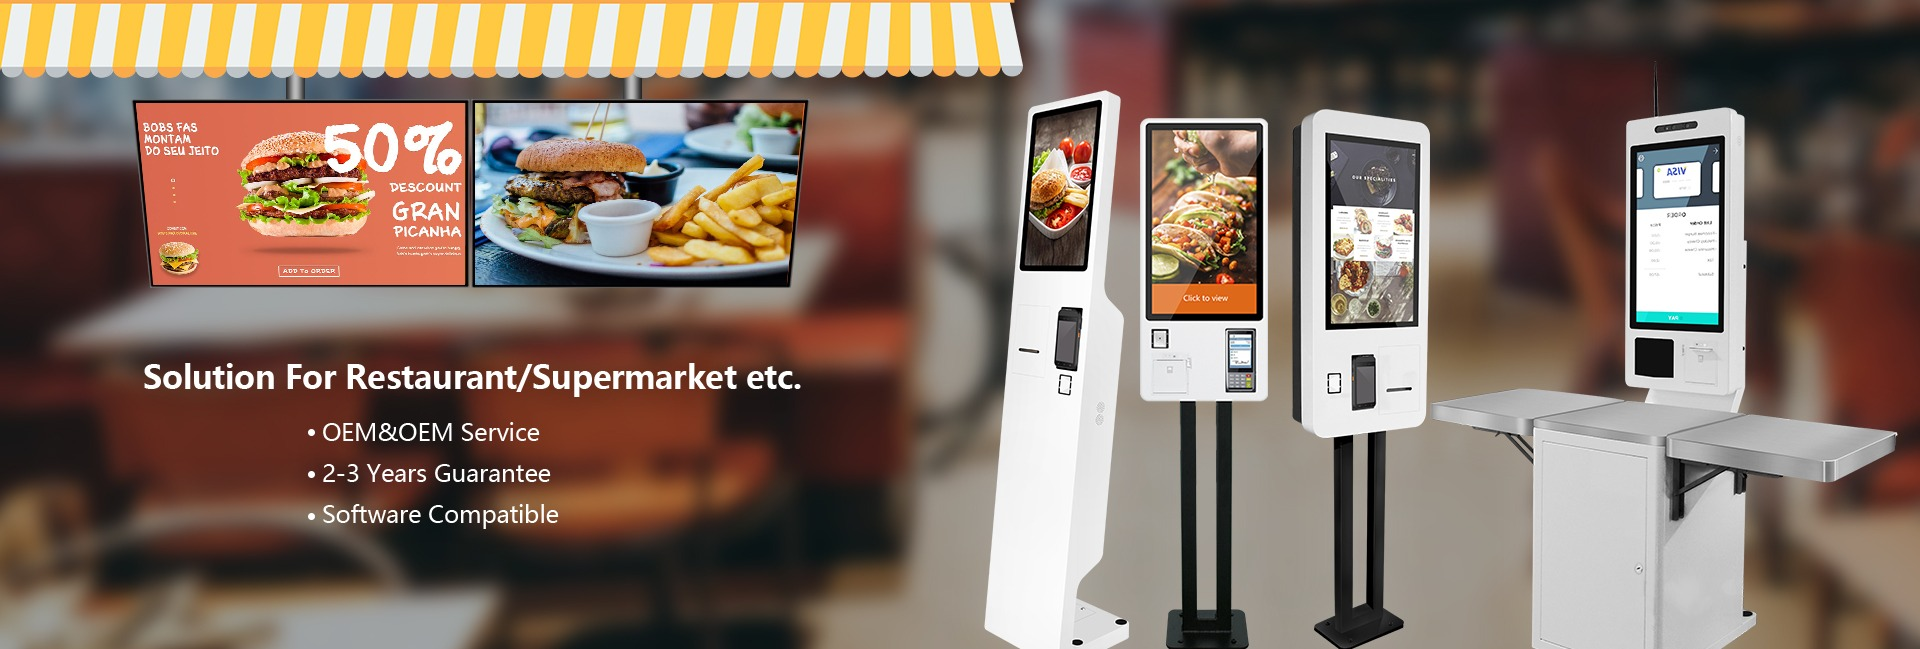 epos system till Digital Screens and self order kiosk